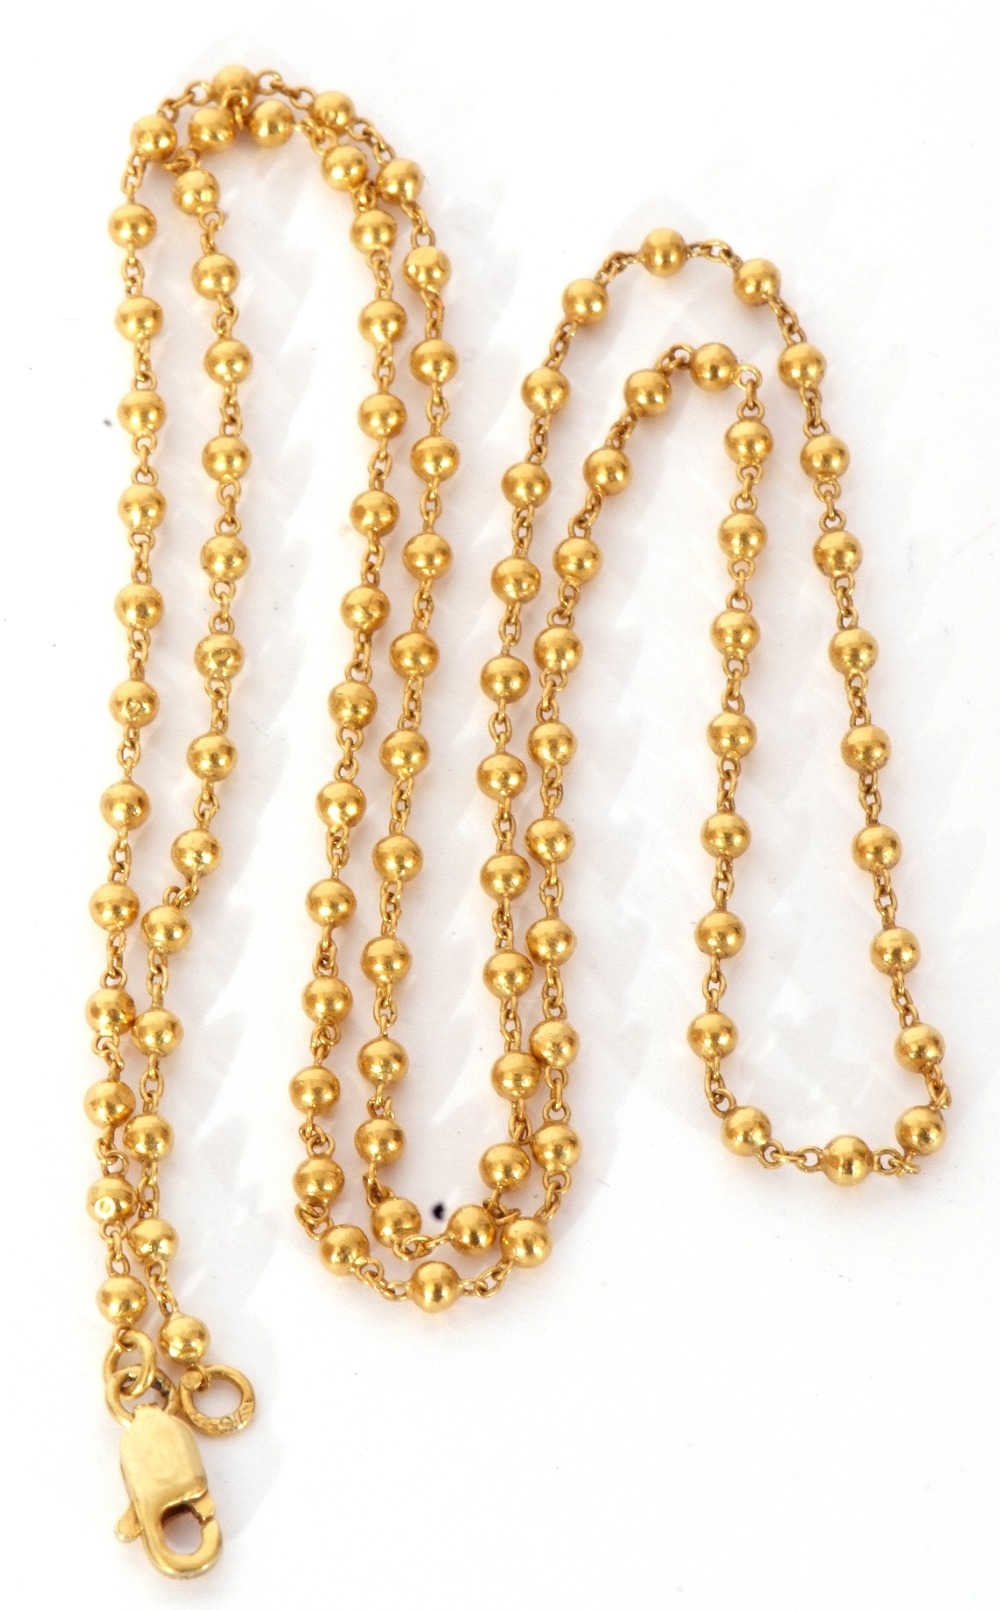 High grade yellow metal chain, oval link and bead design, 29.5cm fastened, 7.8gms (tests for 18ct - Image 2 of 2